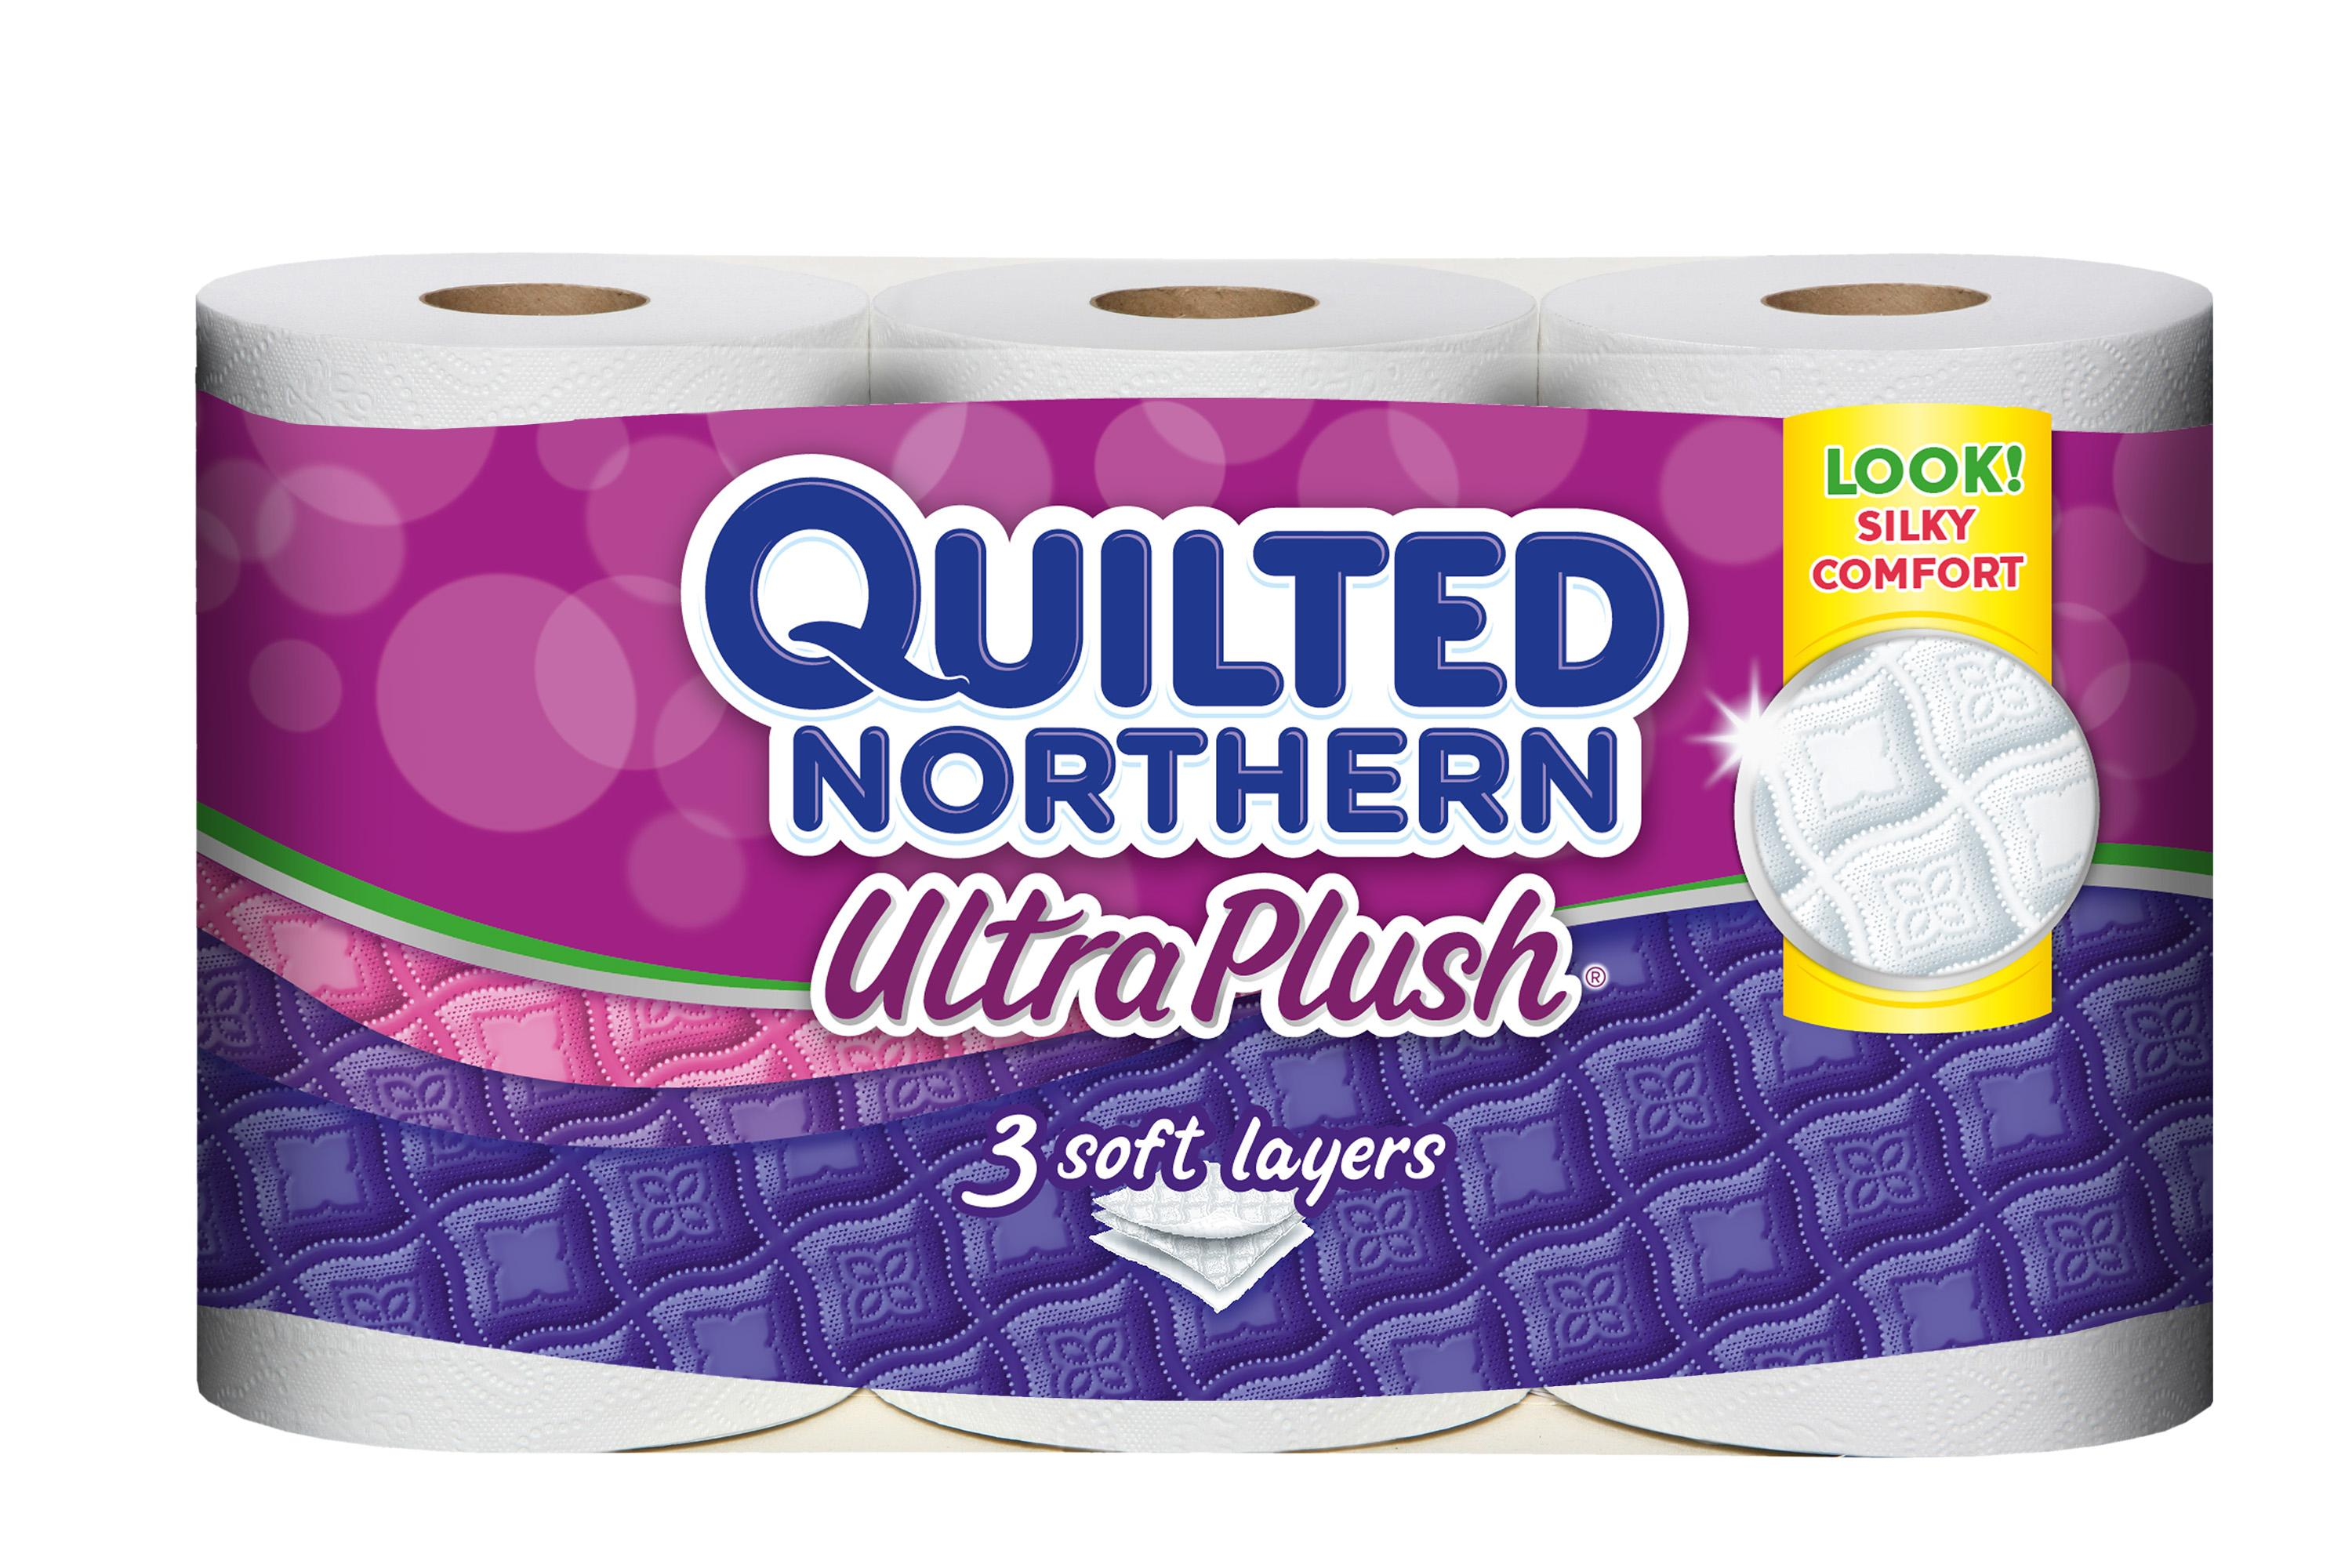 Quilted Northern Ultra Plush toilet paper is Quilted Northern Ultra Plush Toilet Paper, Pack of 12 Double Rolls, Equivalent to 24 Regular Rolls. by Quilted Northern. $ $ 18 99 ($/ Sheets) FREE Shipping on eligible orders. More options available: $ Other Sellers.